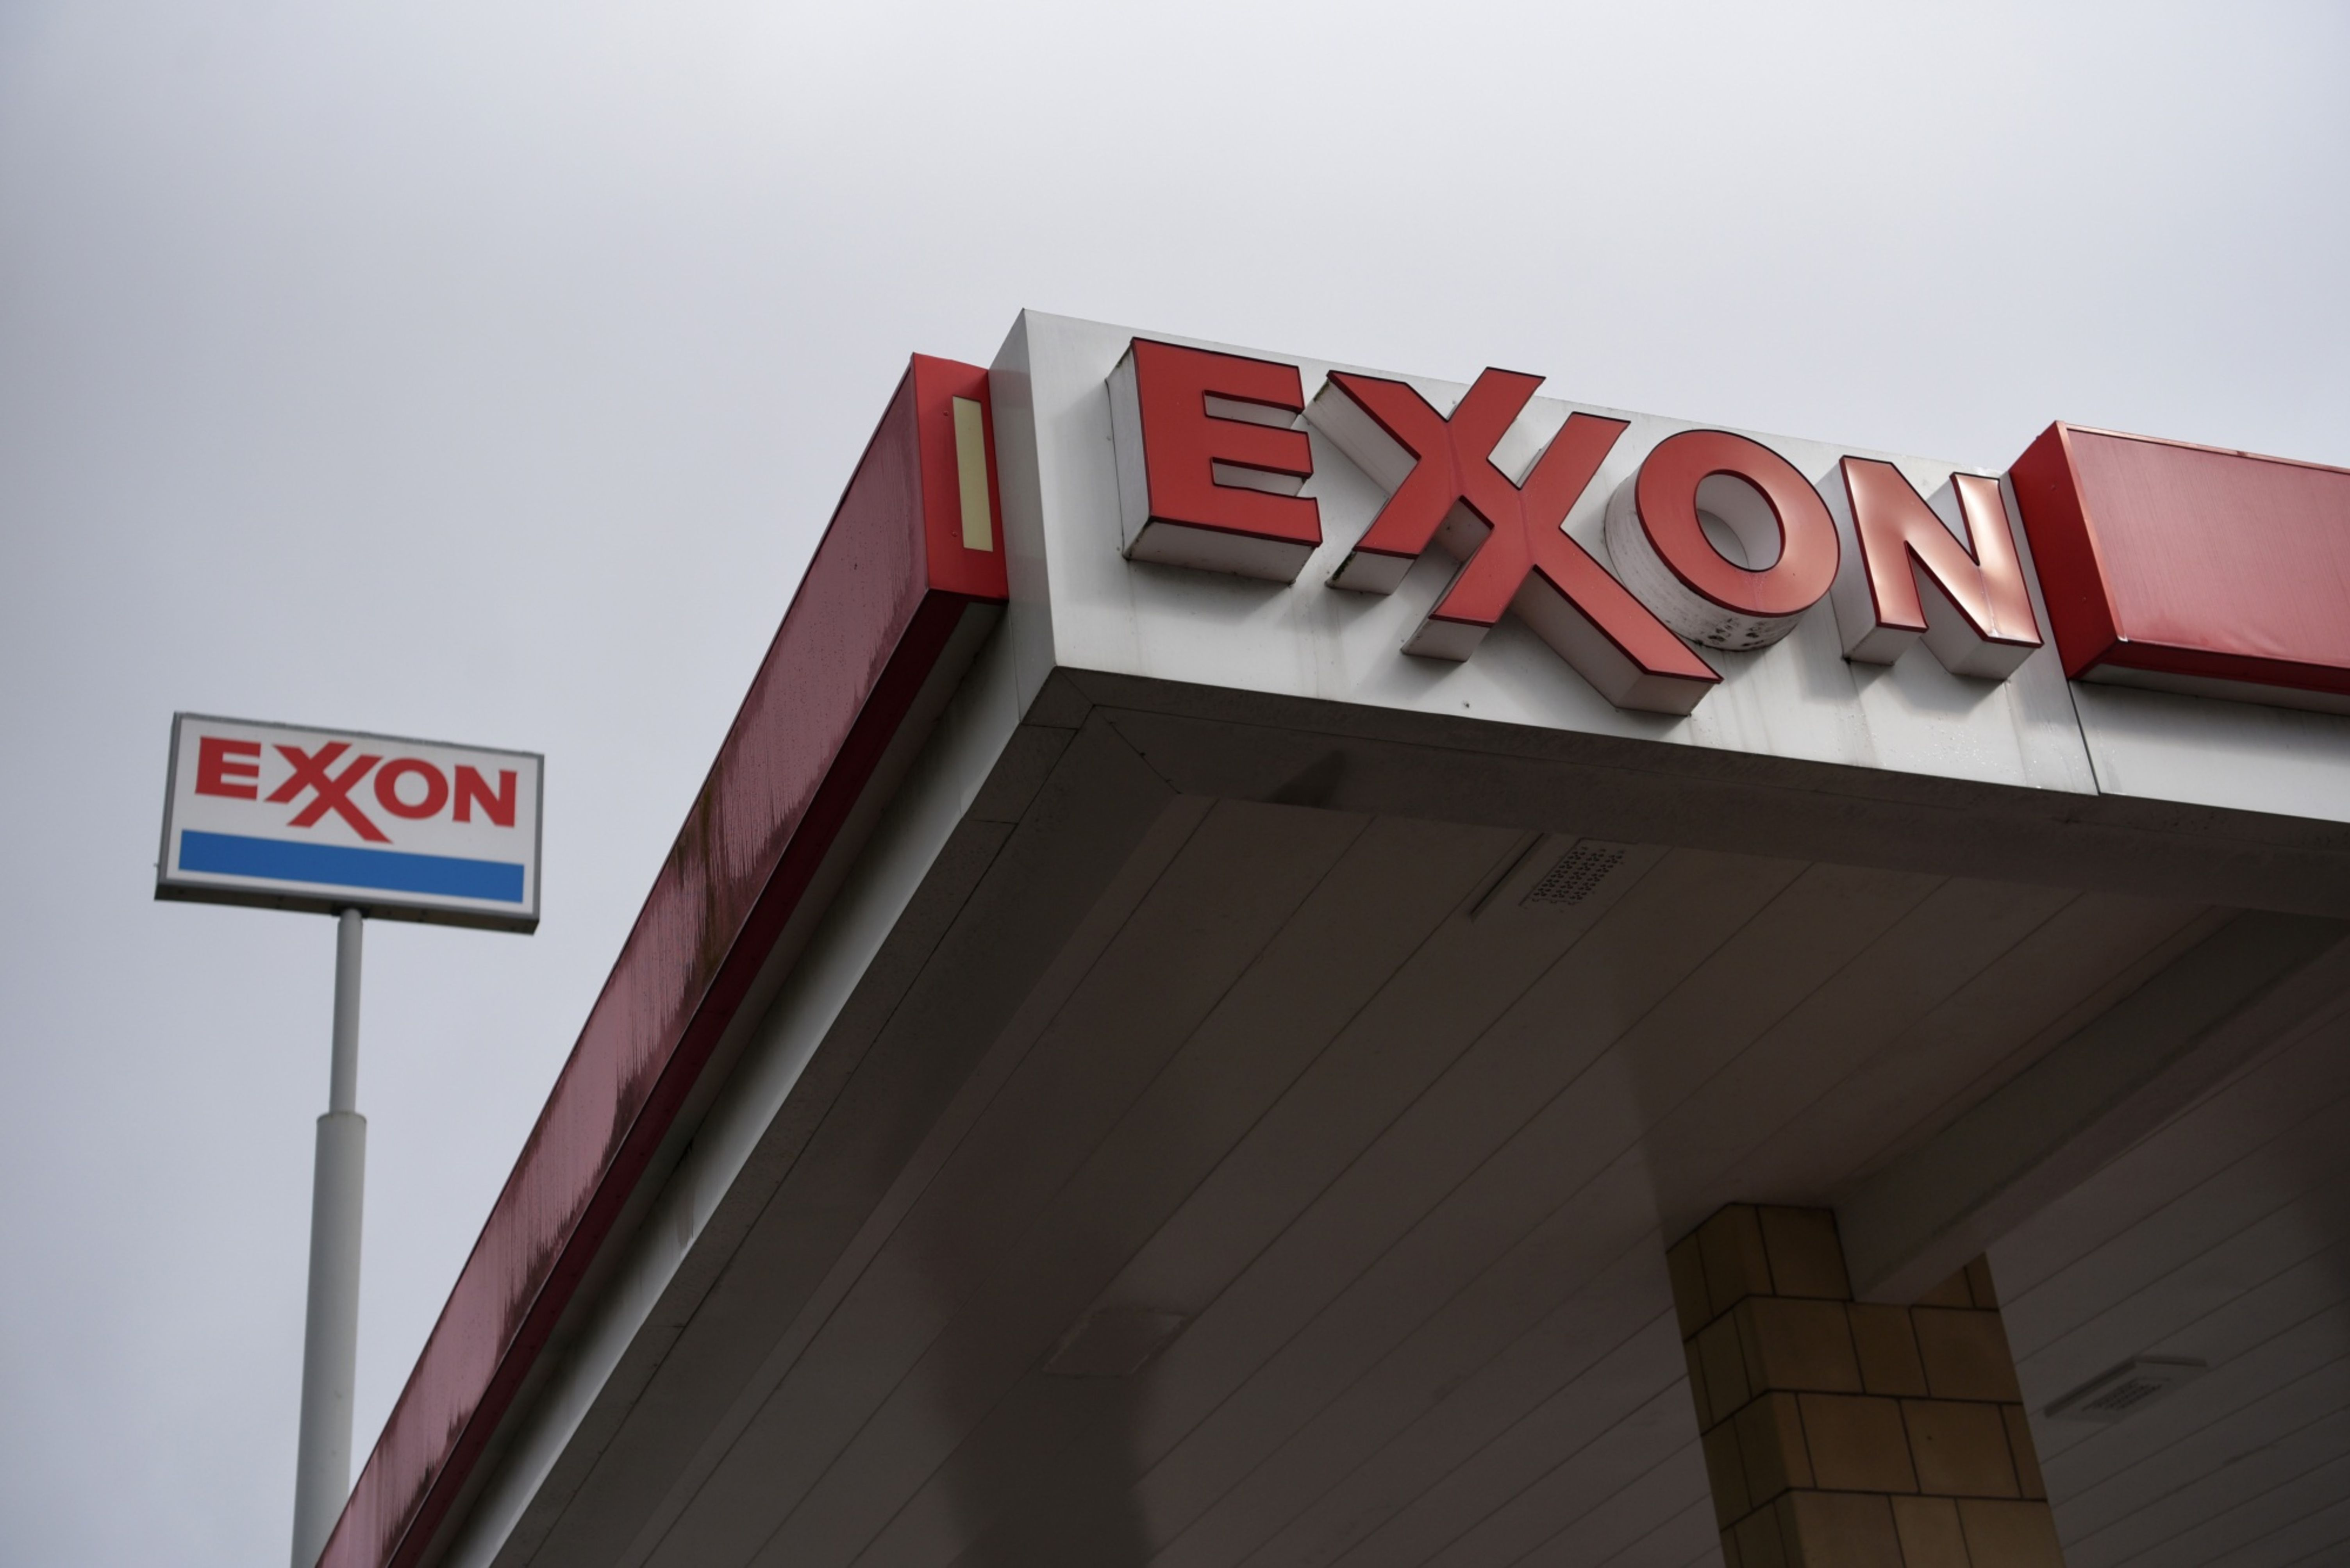 Signage at an Exxon Mobil Corp. gas station in Houston, Texas, U.S., on Wednesday, Oct. 28, 2020. Exxon is scheduled to release earnings figures on October 30.